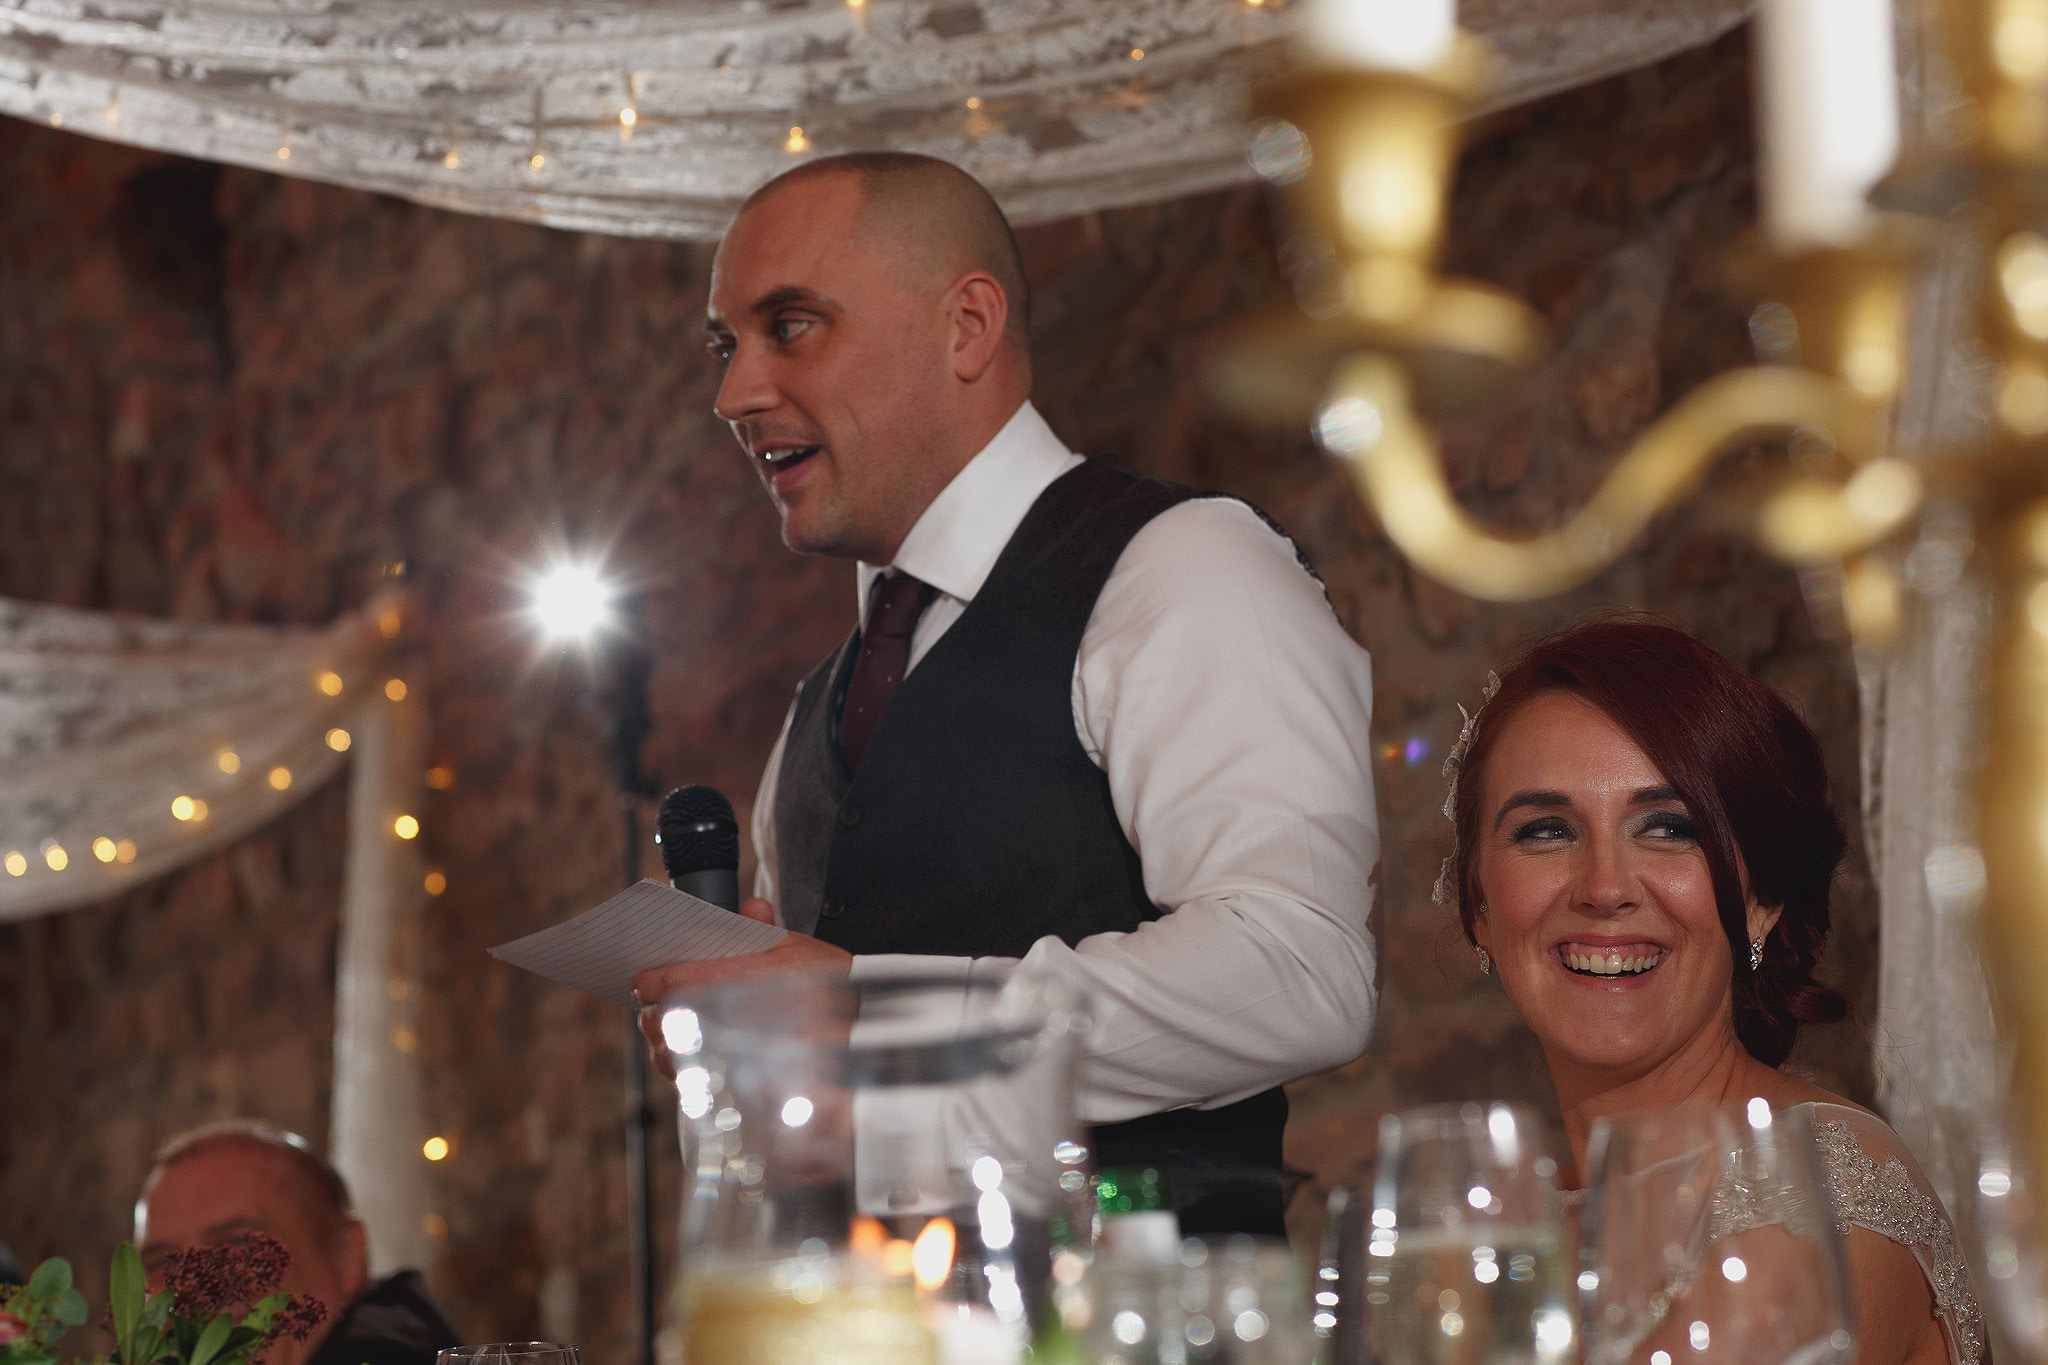 Wedding speeches at Browsholme Hall Wedding.